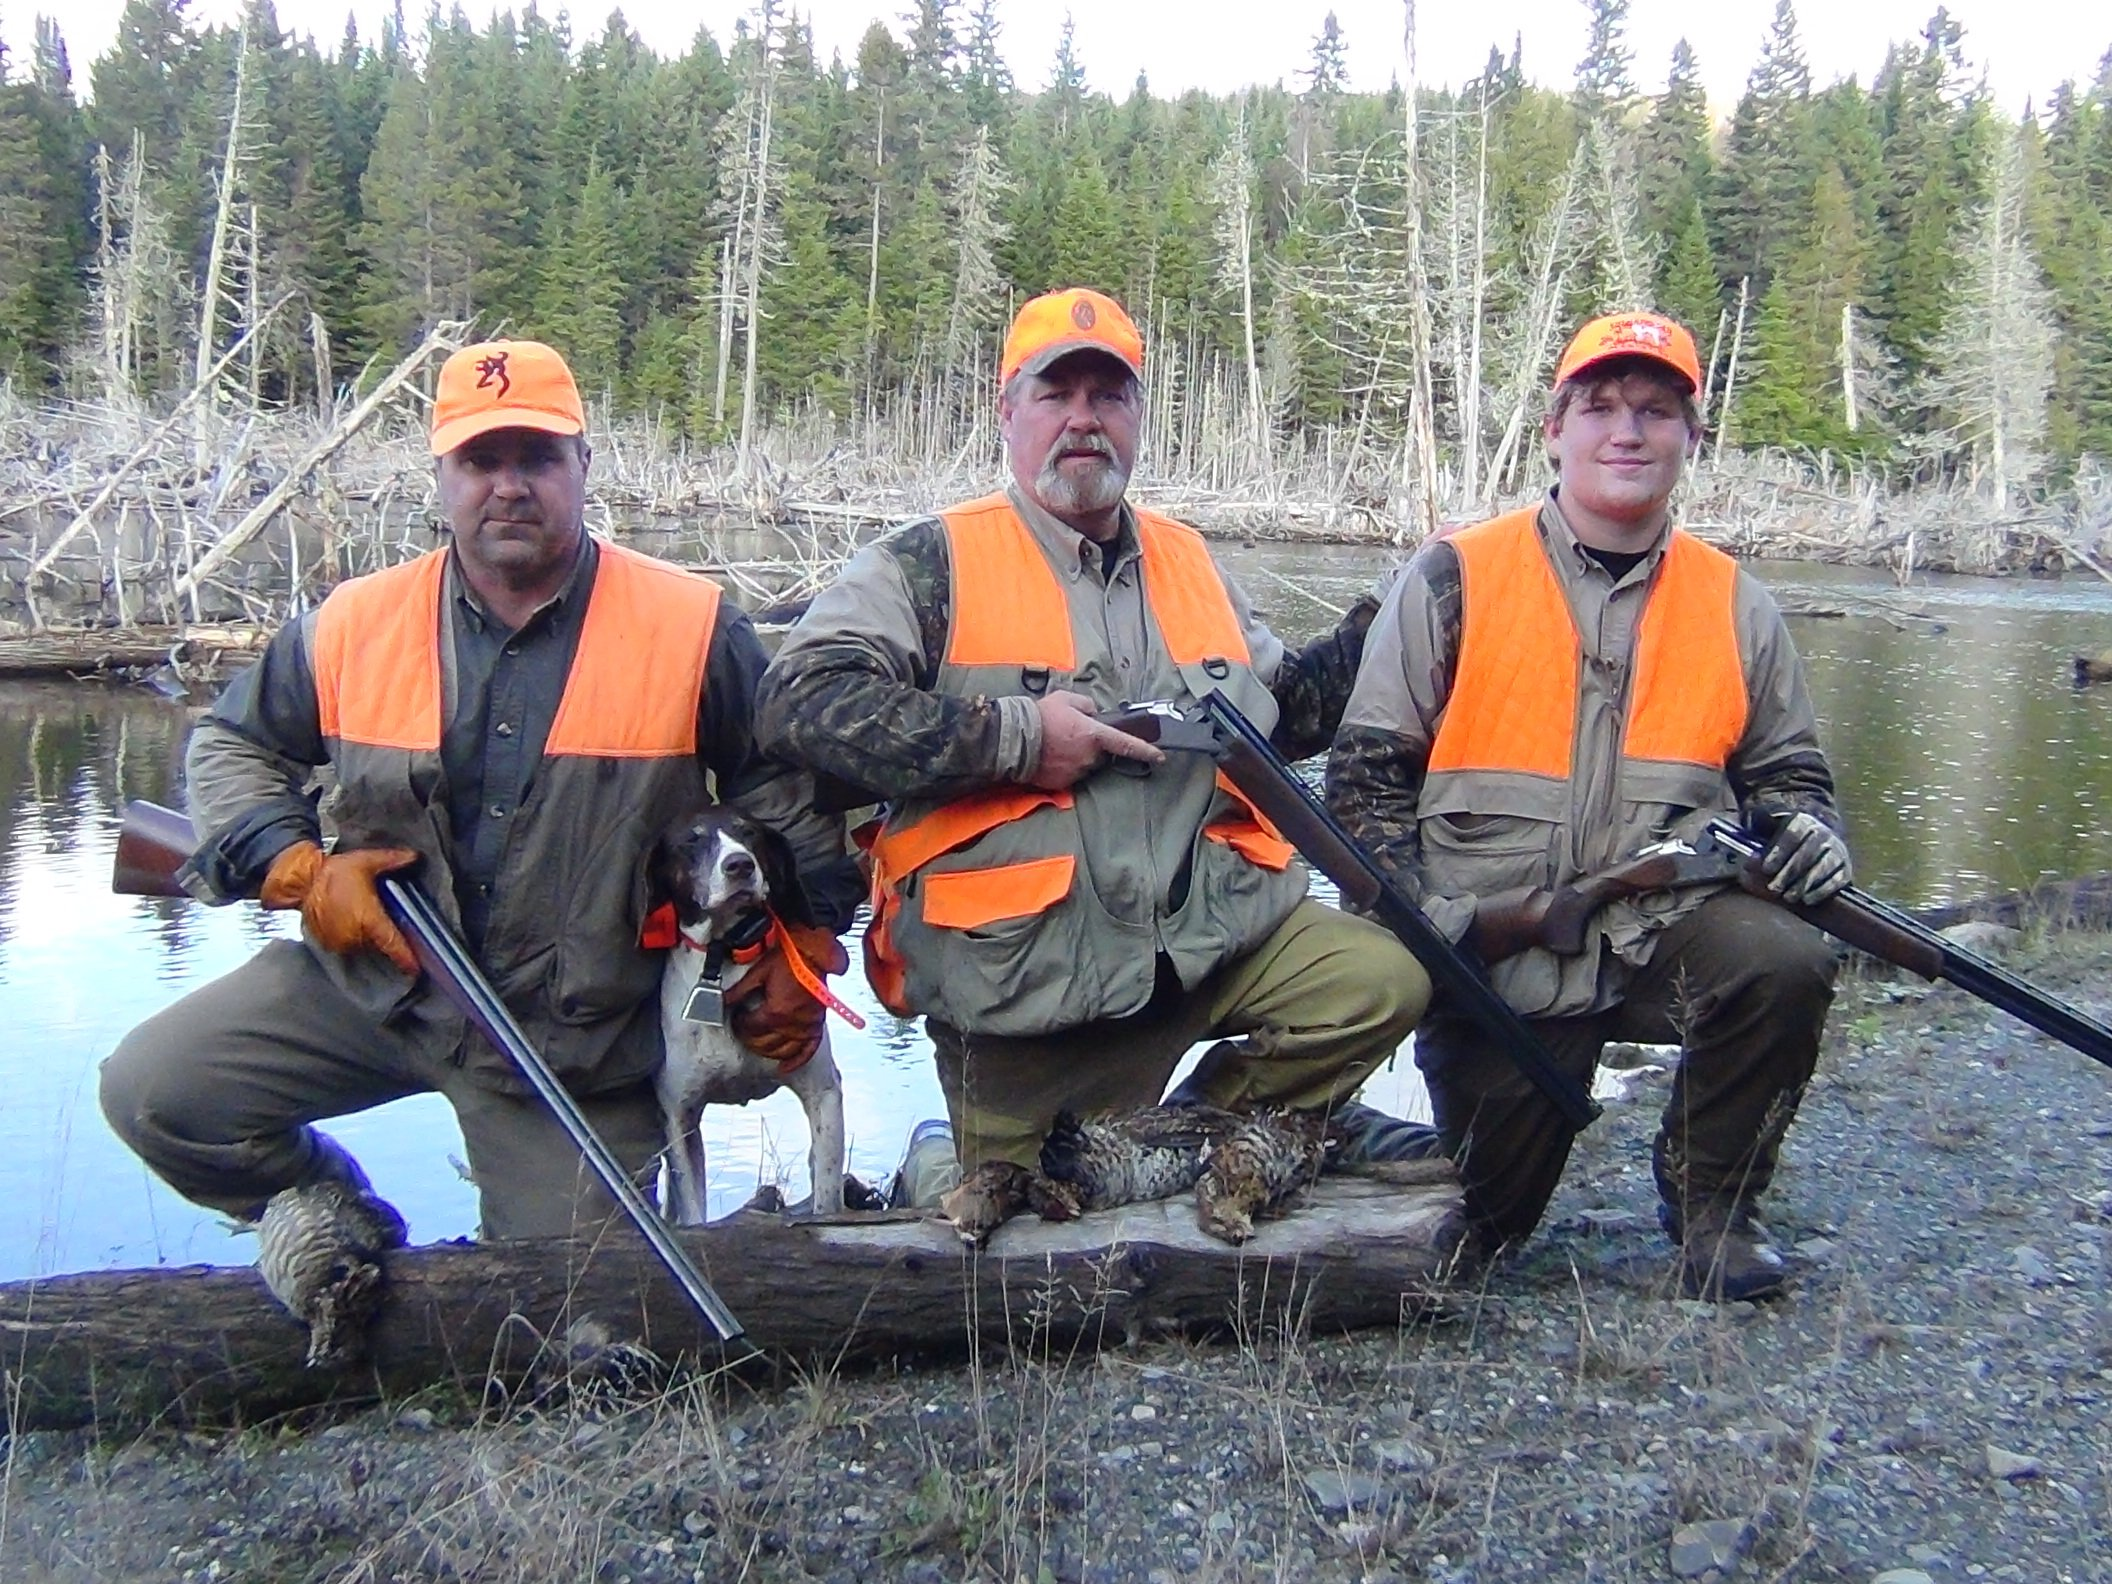 Maine grouse hunting photo gallery allagash guide service for Maine fishing guide